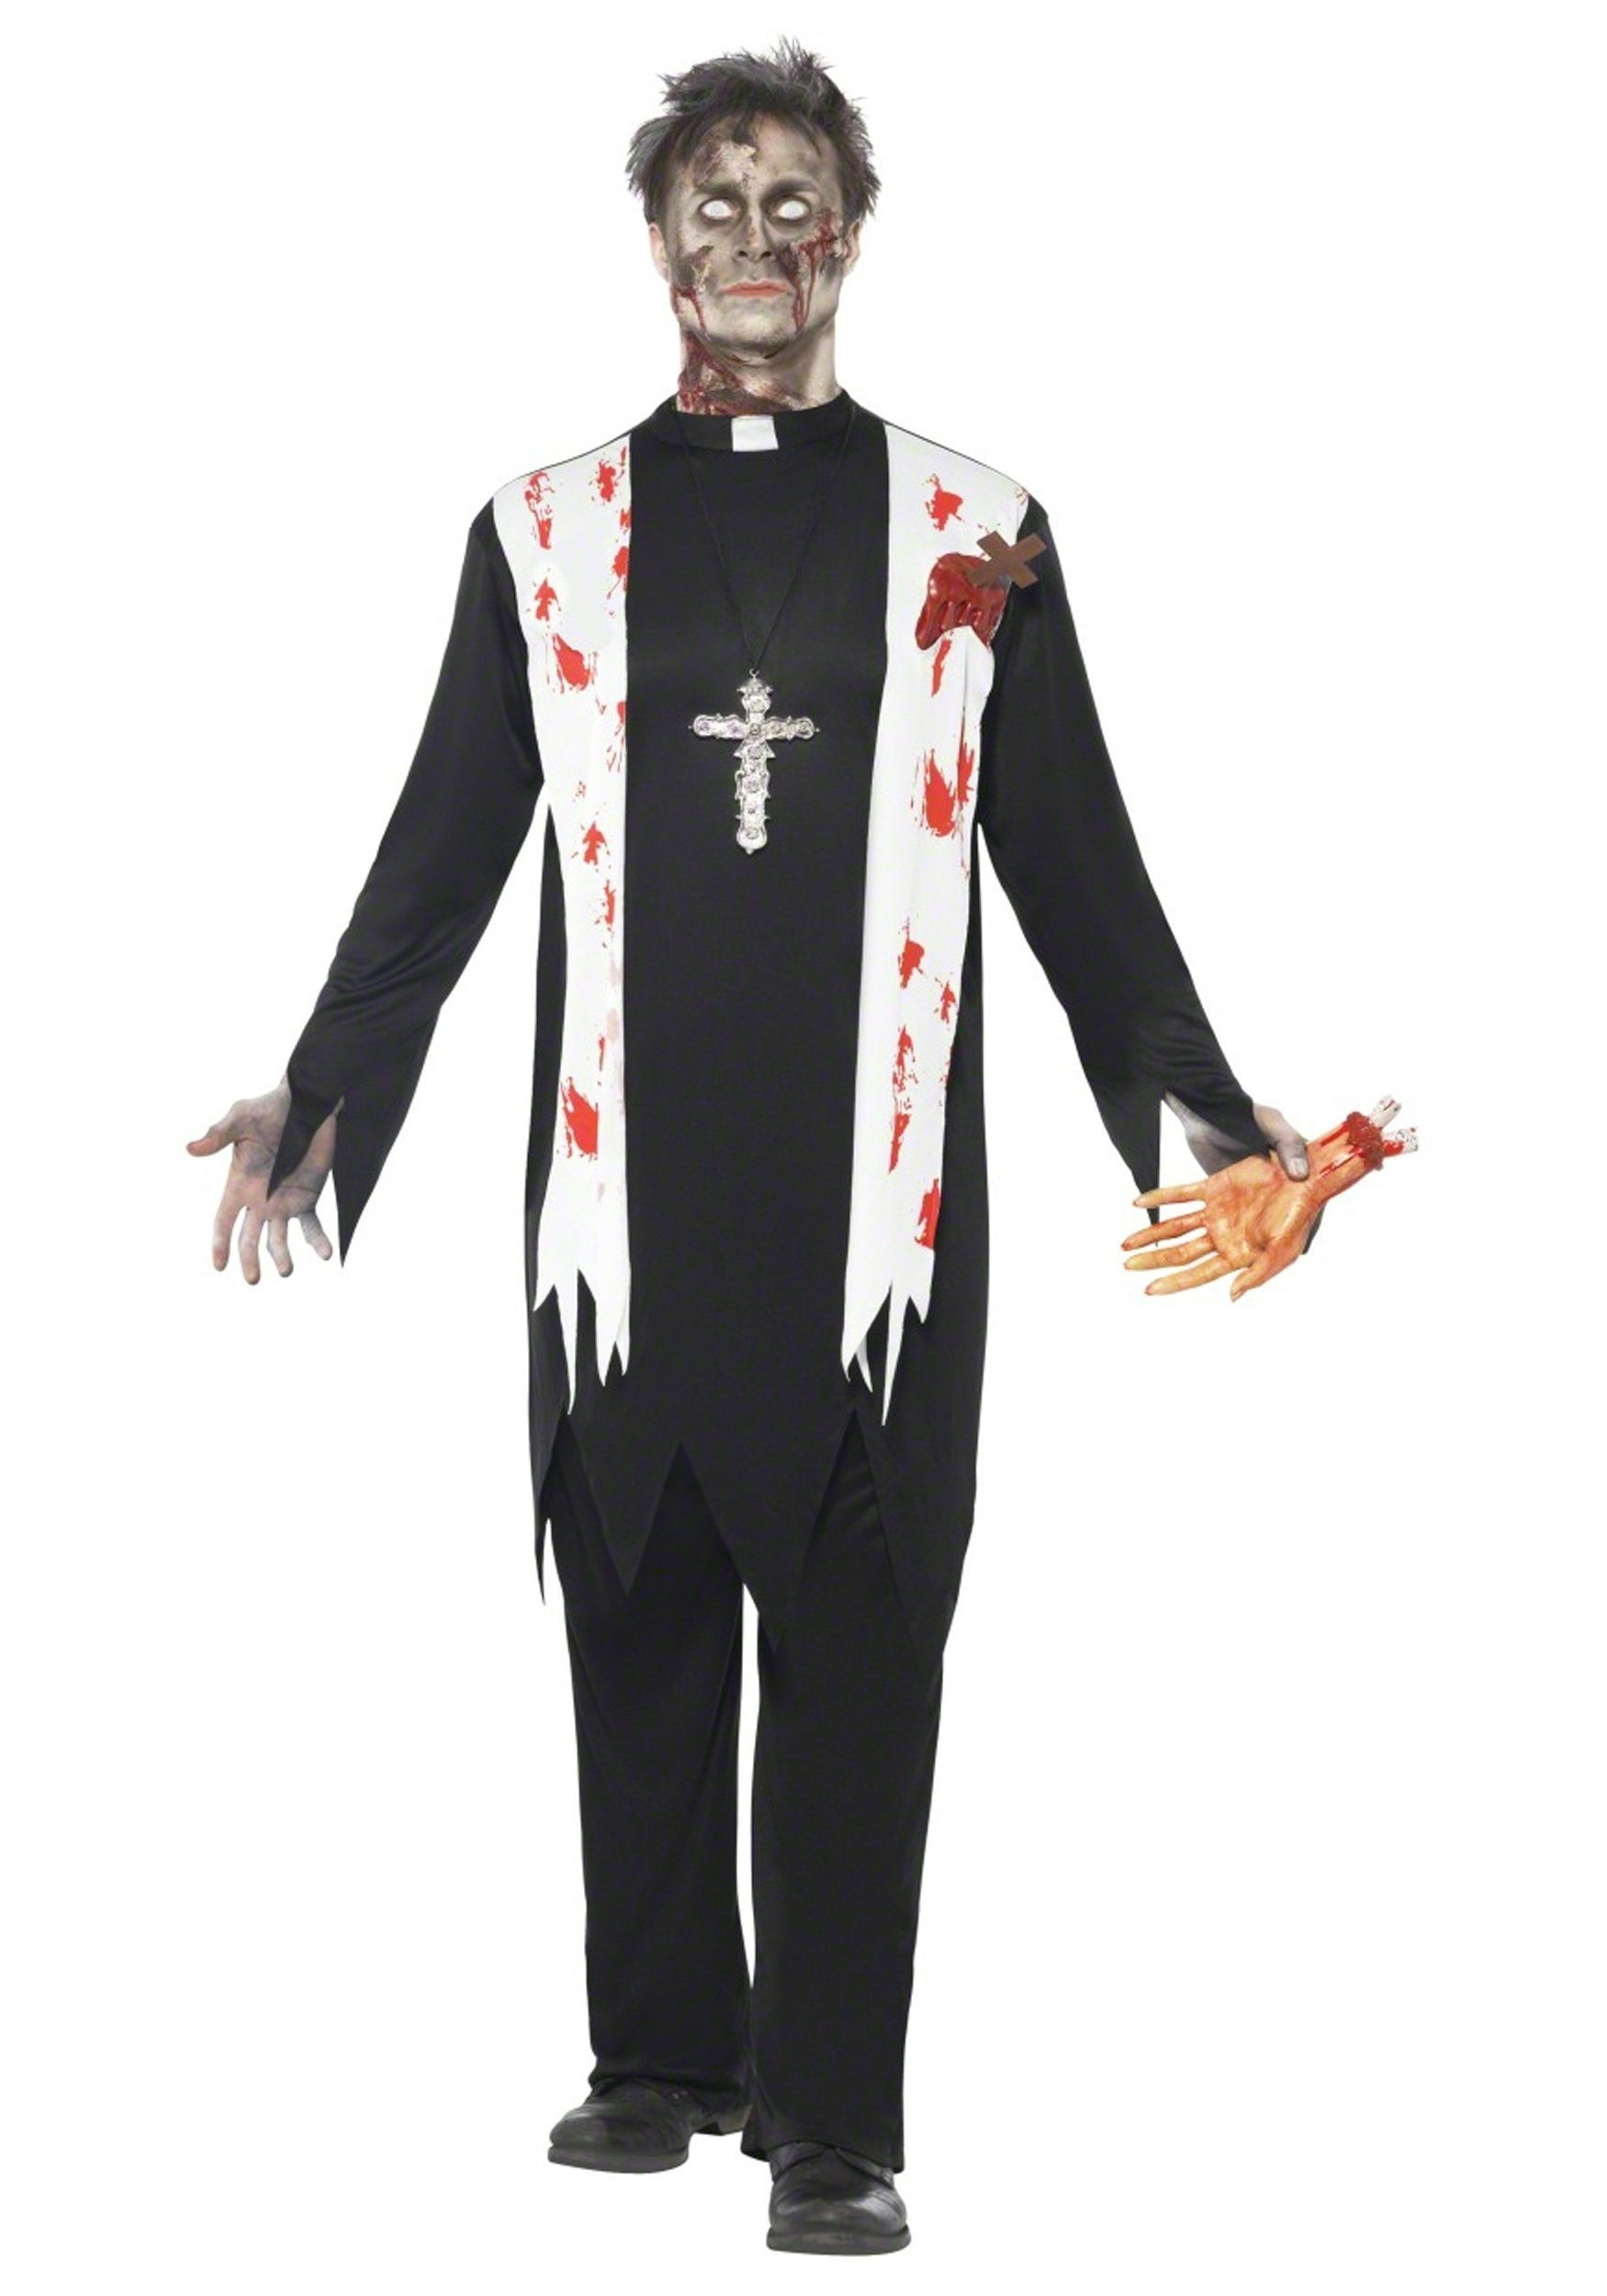 10 Fashionable Zombie Costume Ideas For Men zombie priest costume 1 2020